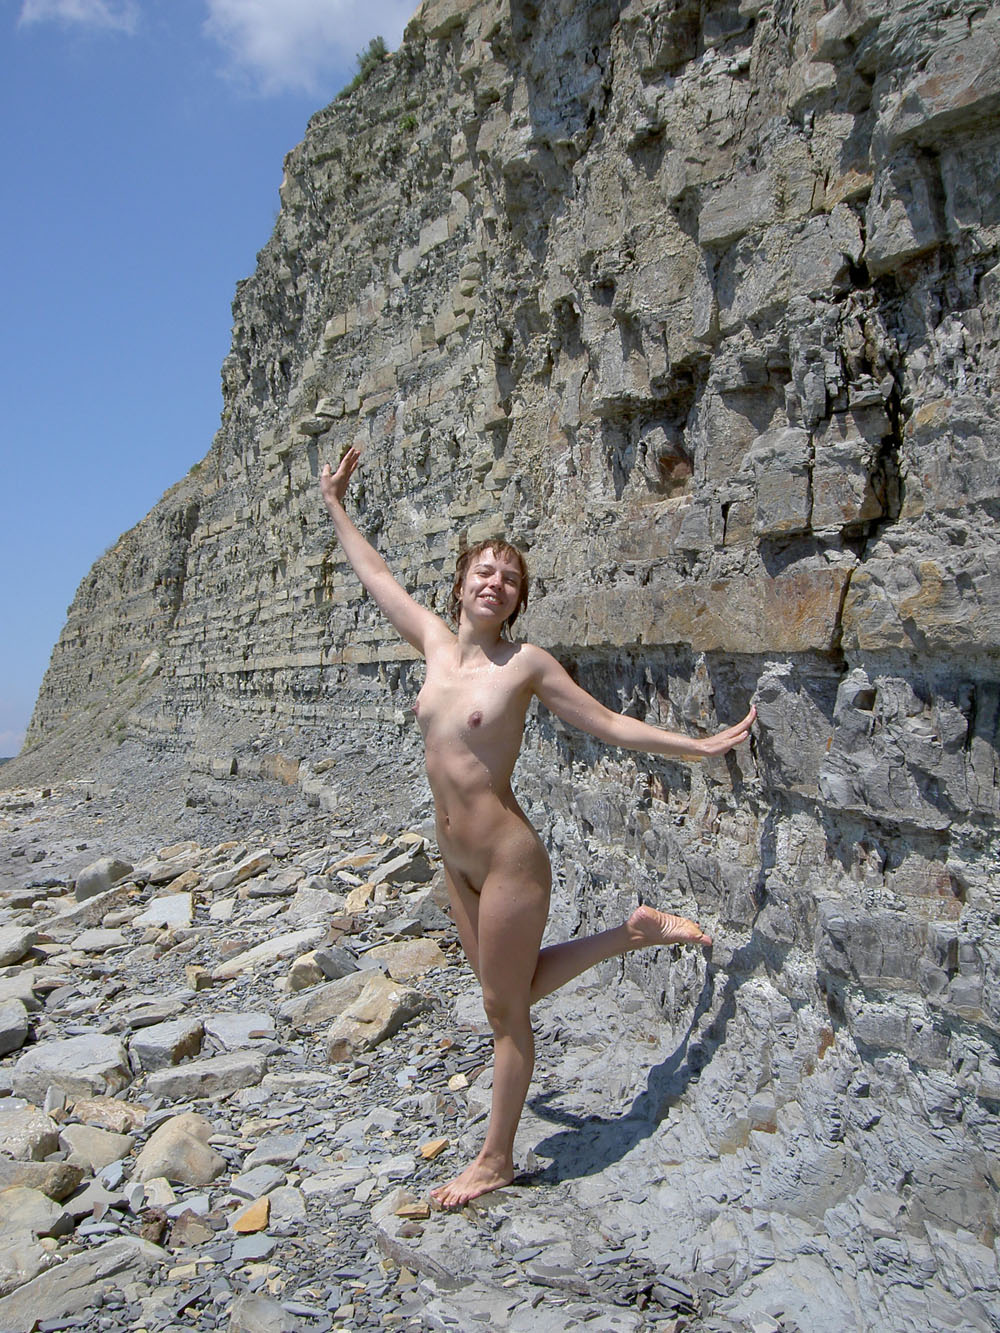 Nude happy girl near a wall of rocks